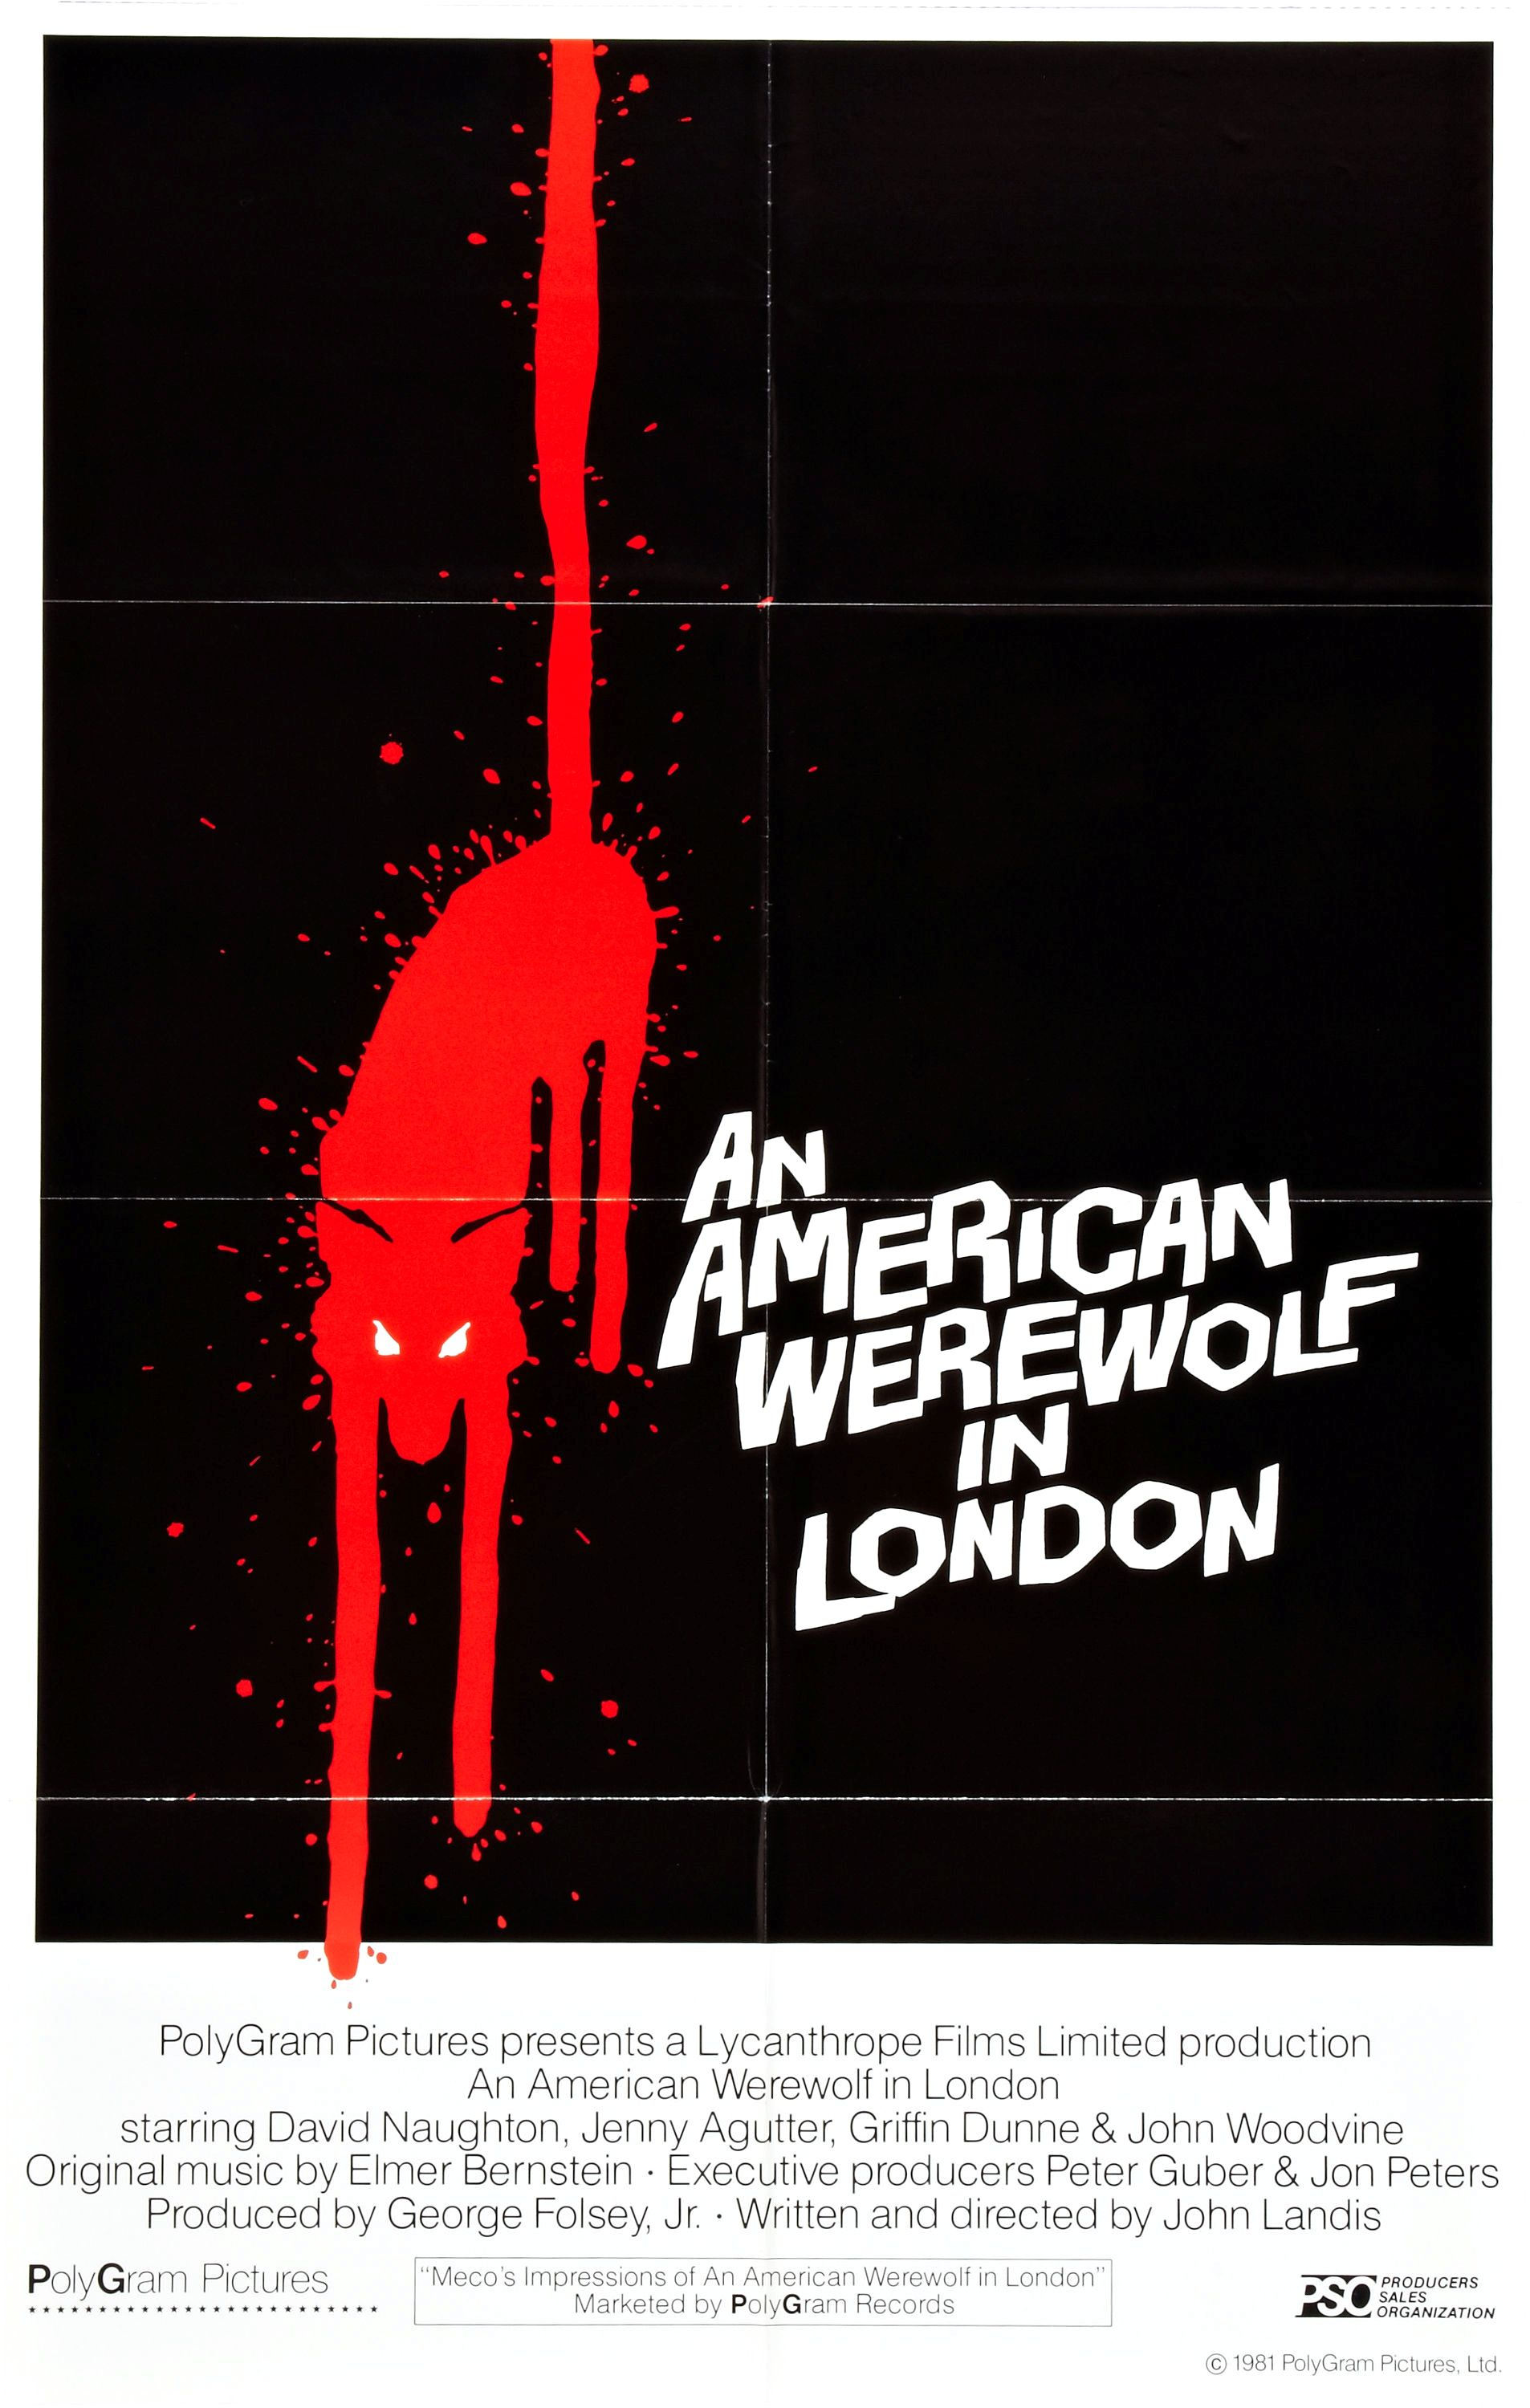 american_werewolf_in_london_poster_1981_01.jpg